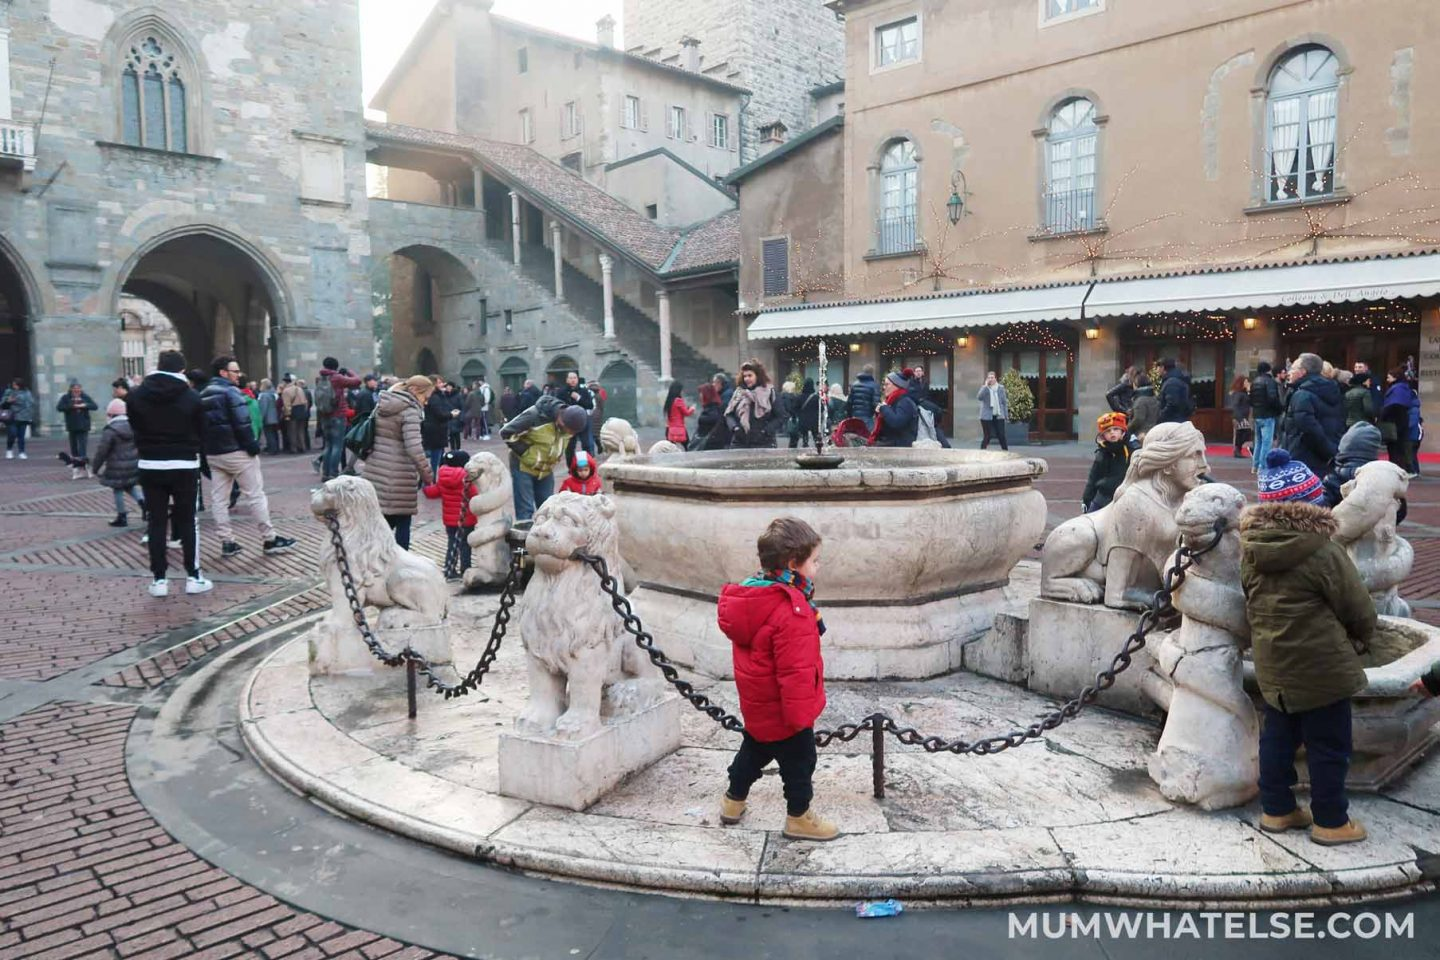 Fontana Contarini in Piazza Vecchia in Bergamo with children around who play